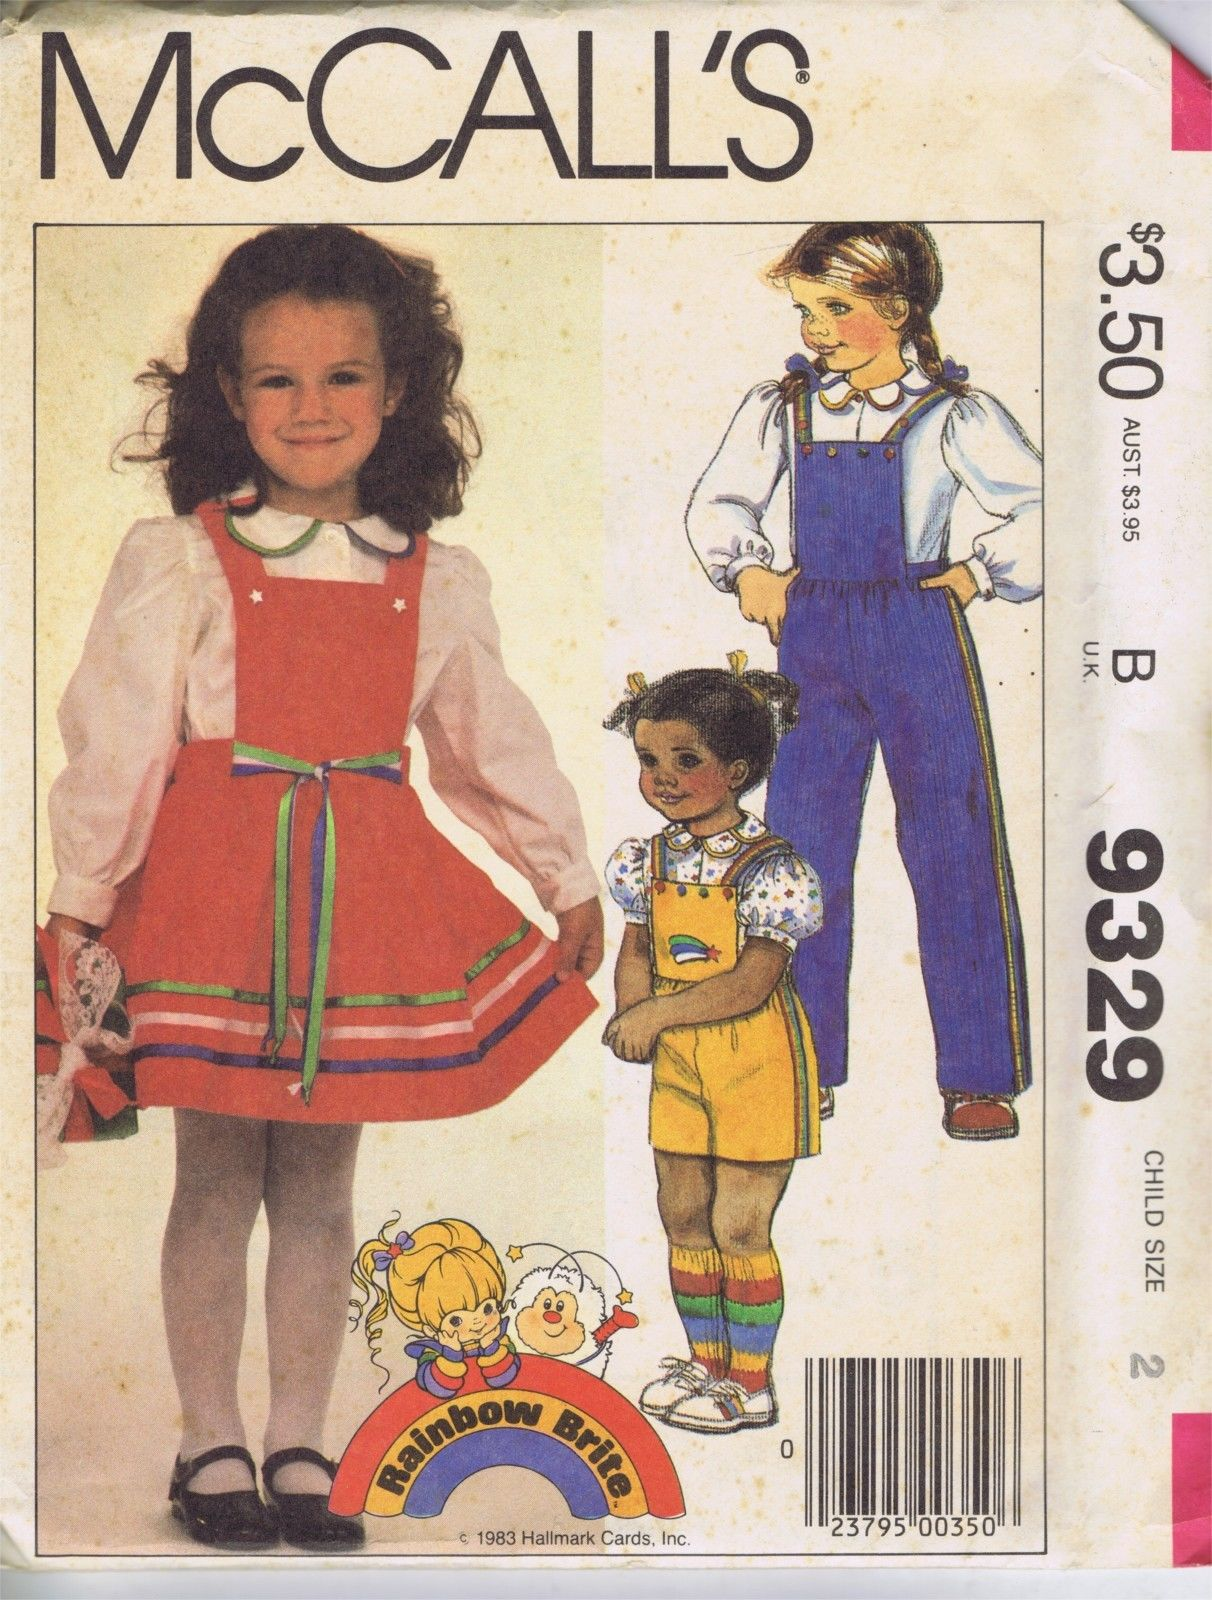 9329 McCalls Girls Dress Overalls Blouse Sewing Pattern Size 2 Bust 21 Inches Uncut McCall's 9329, features a jumper dress, overalls and blouse sewing pattern for toddler girls in size 2 with a 21 inch bust along with an applique, the pattern is uncut.